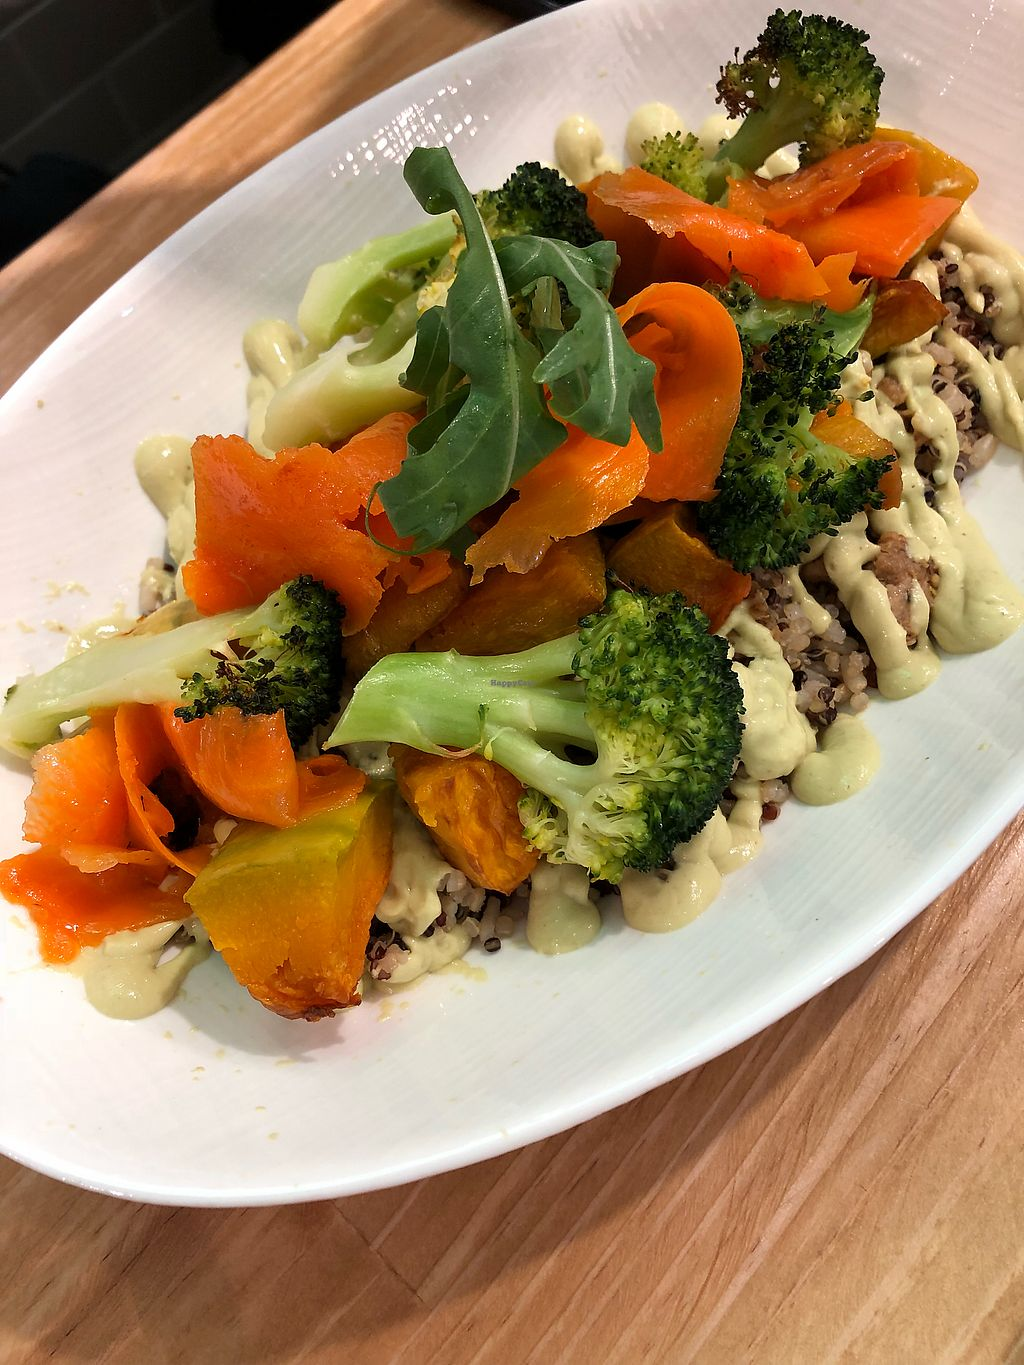 """Photo of Ooh Cha Cha Tech  by <a href=""""/members/profile/HaileyPoLa"""">HaileyPoLa</a> <br/>Quinoa salad  <br/> March 18, 2018  - <a href='/contact/abuse/image/110310/372287'>Report</a>"""